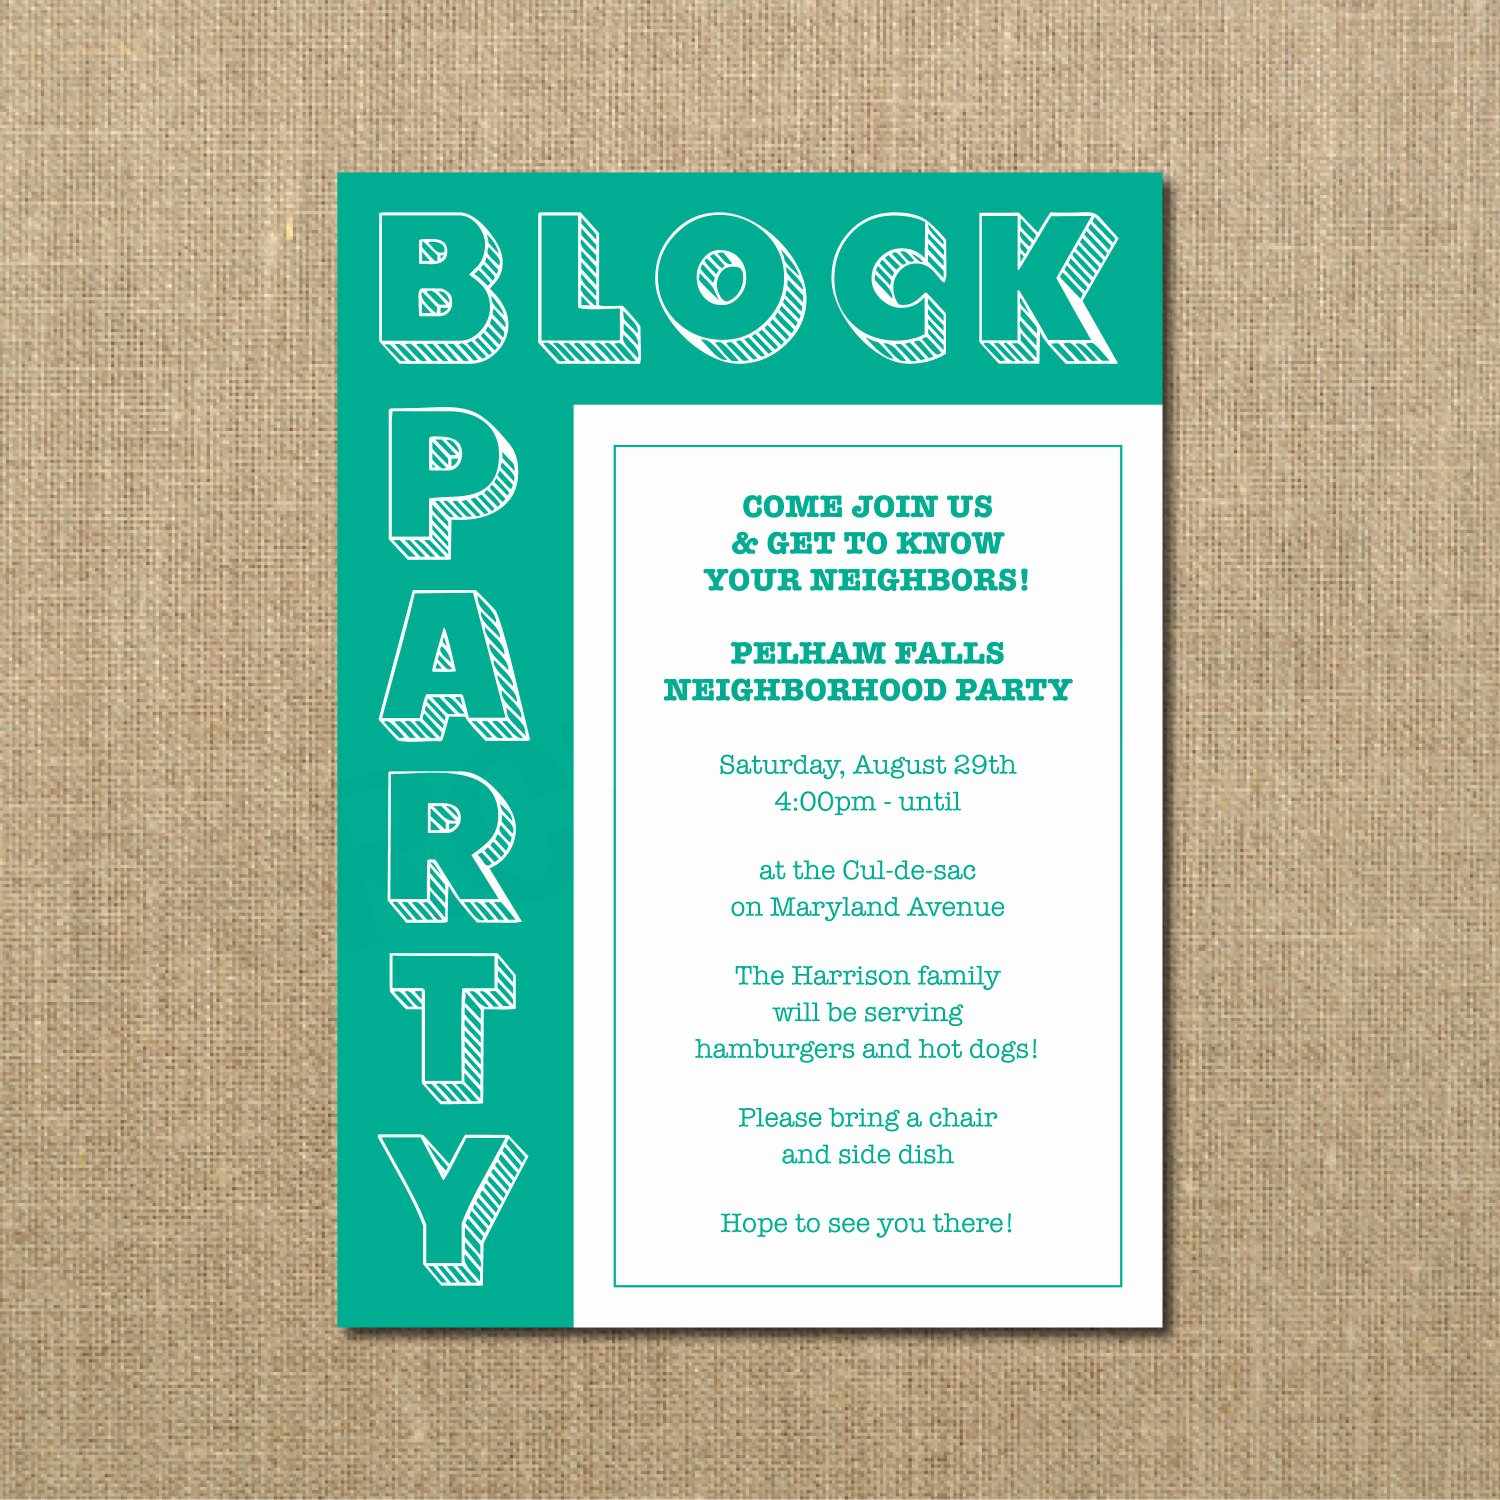 Neighborhood Block Party Flyer Template Inspirational Neighborhood Block Party Cookout Invitation Grilling Out